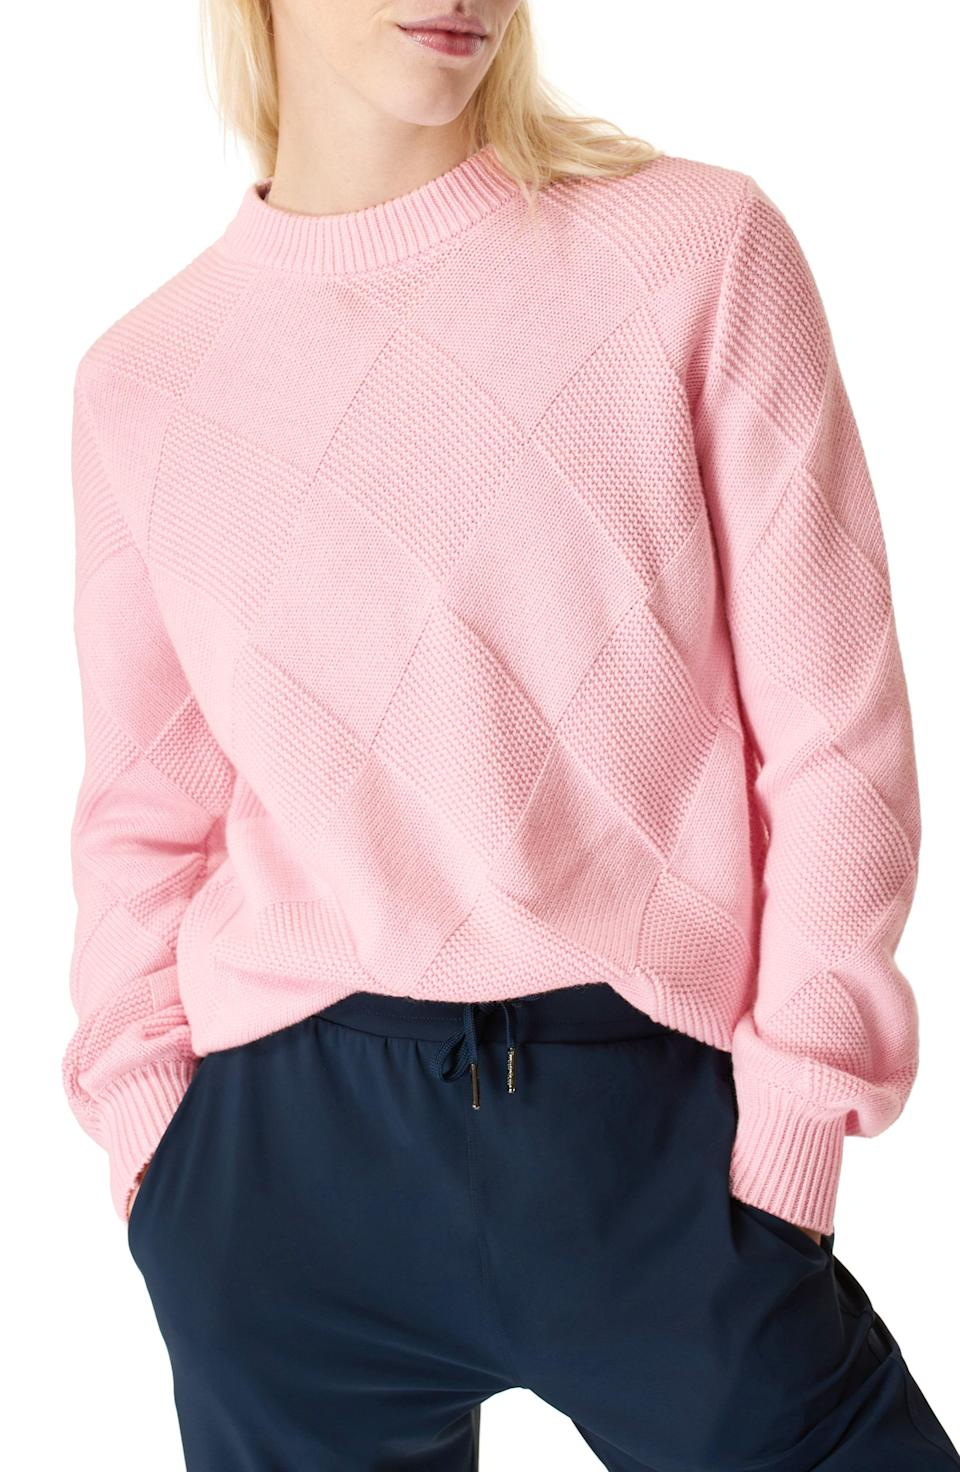 """<p><strong>SWEATY BETTY</strong></p><p>nordstrom.com</p><p><a href=""""https://go.redirectingat.com?id=74968X1596630&url=https%3A%2F%2Fwww.nordstrom.com%2Fs%2Fsweaty-betty-diamond-knit-cotton-wool-sweater%2F5842780&sref=https%3A%2F%2Fwww.townandcountrymag.com%2Fstyle%2Ffashion-trends%2Fg35967828%2Fnordstrom-spring-sale-2021%2F"""" rel=""""nofollow noopener"""" target=""""_blank"""" data-ylk=""""slk:Shop Now"""" class=""""link rapid-noclick-resp"""">Shop Now</a></p><p>$88.80</p><p><em>Original Price: $148</em></p>"""